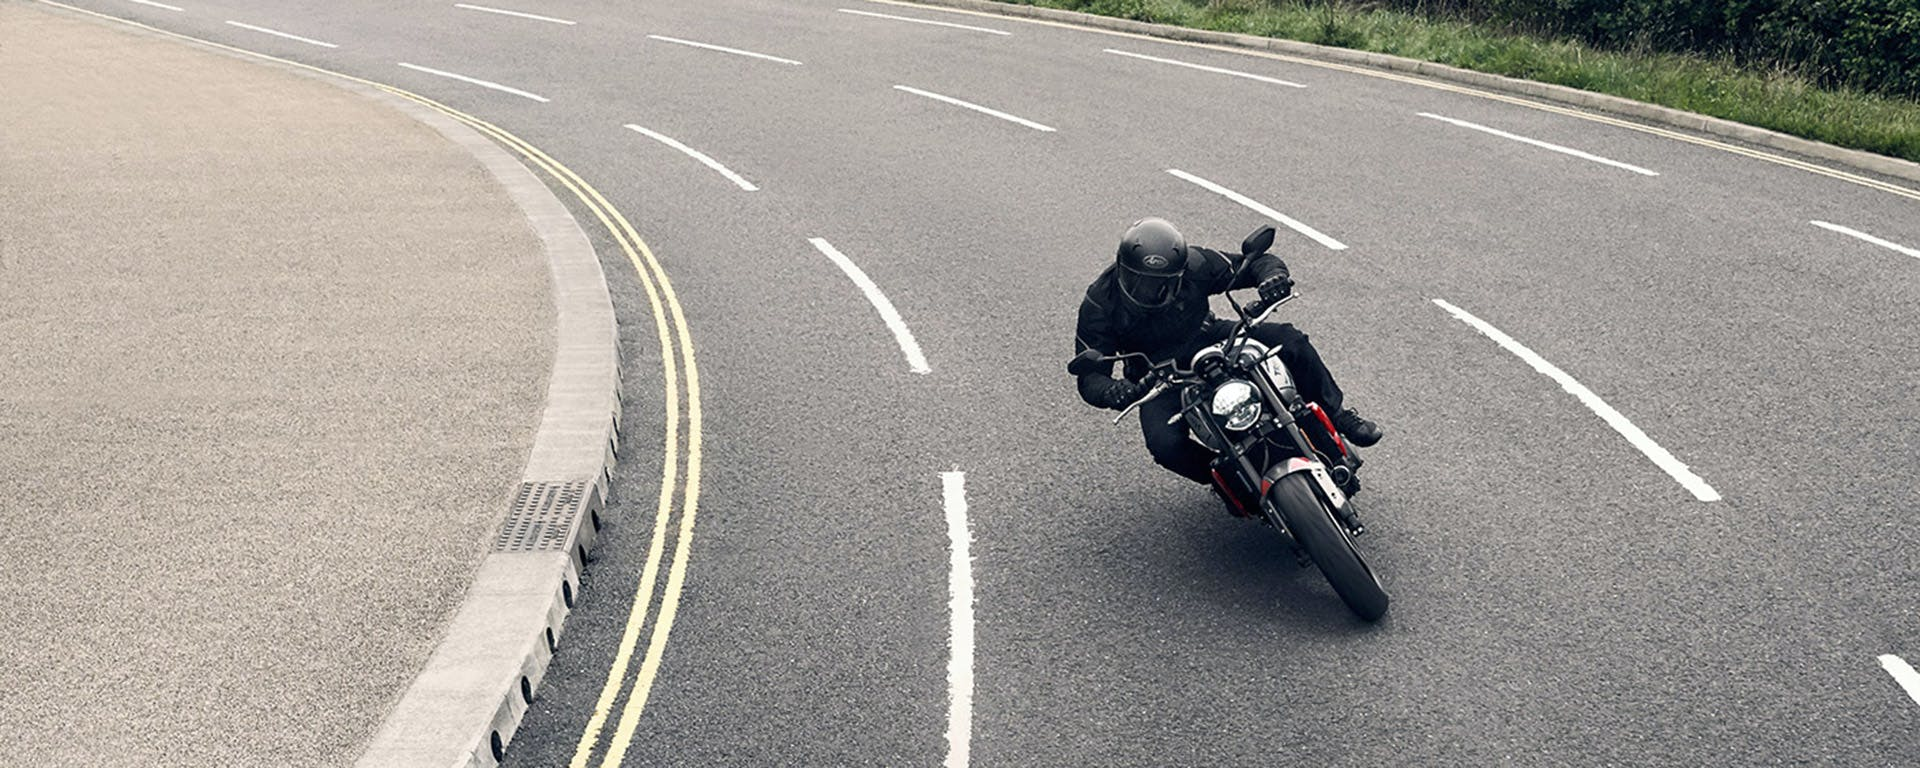 Triumph Trident 660 in action on the road